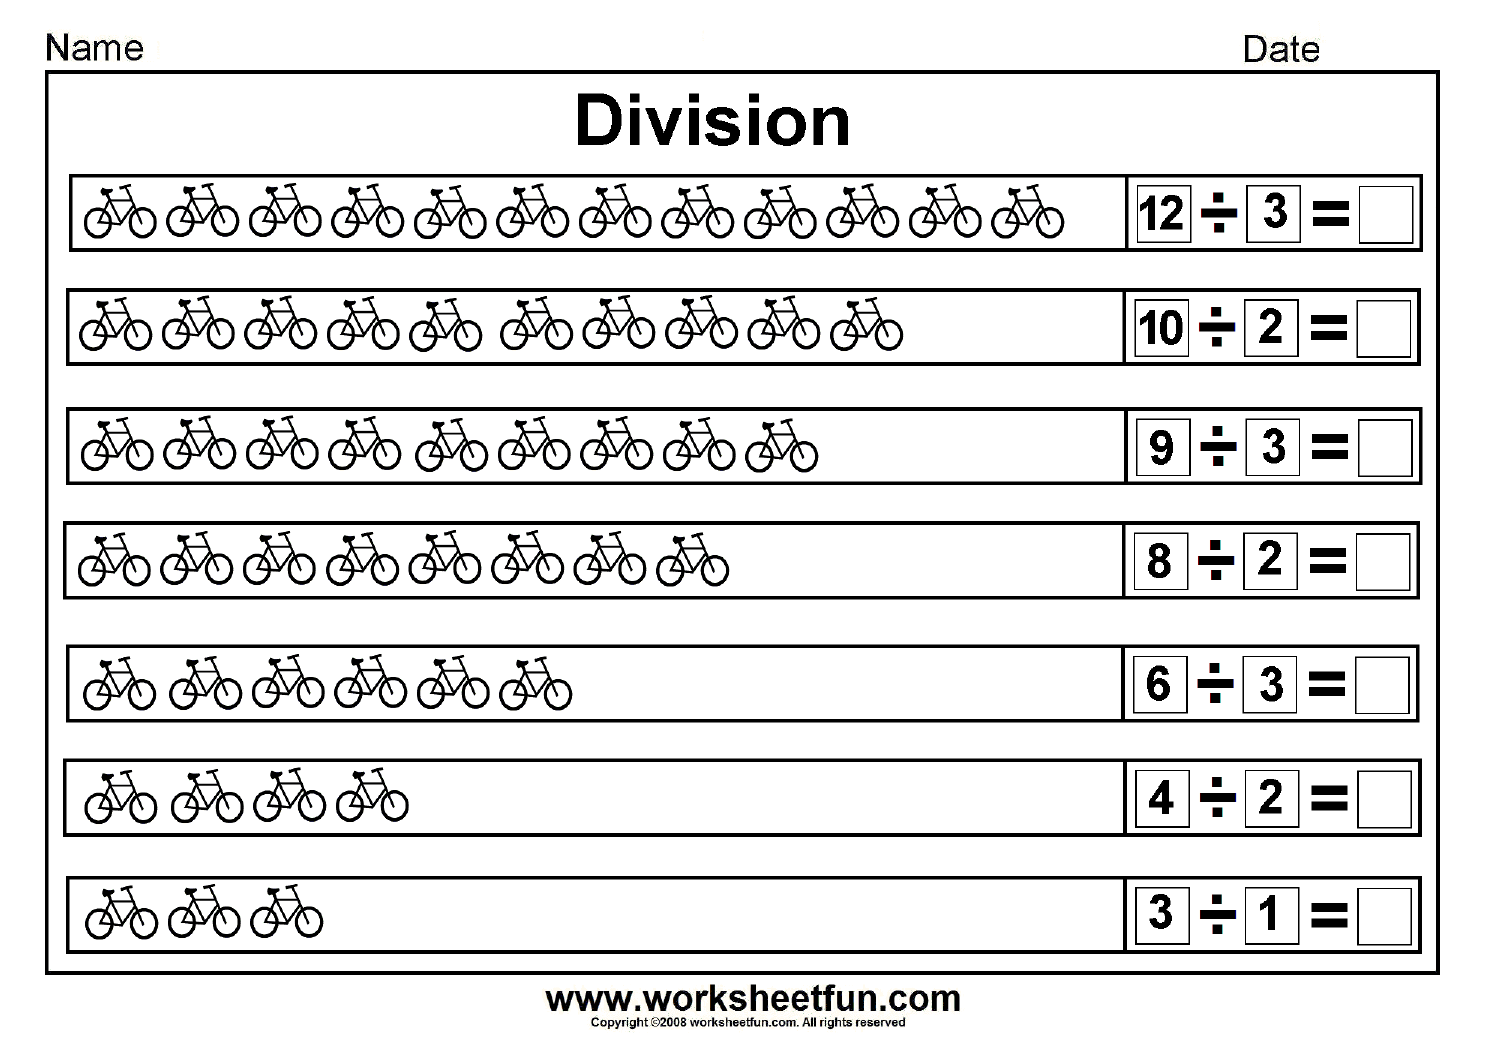 Division Worksheets On Worksheetfun